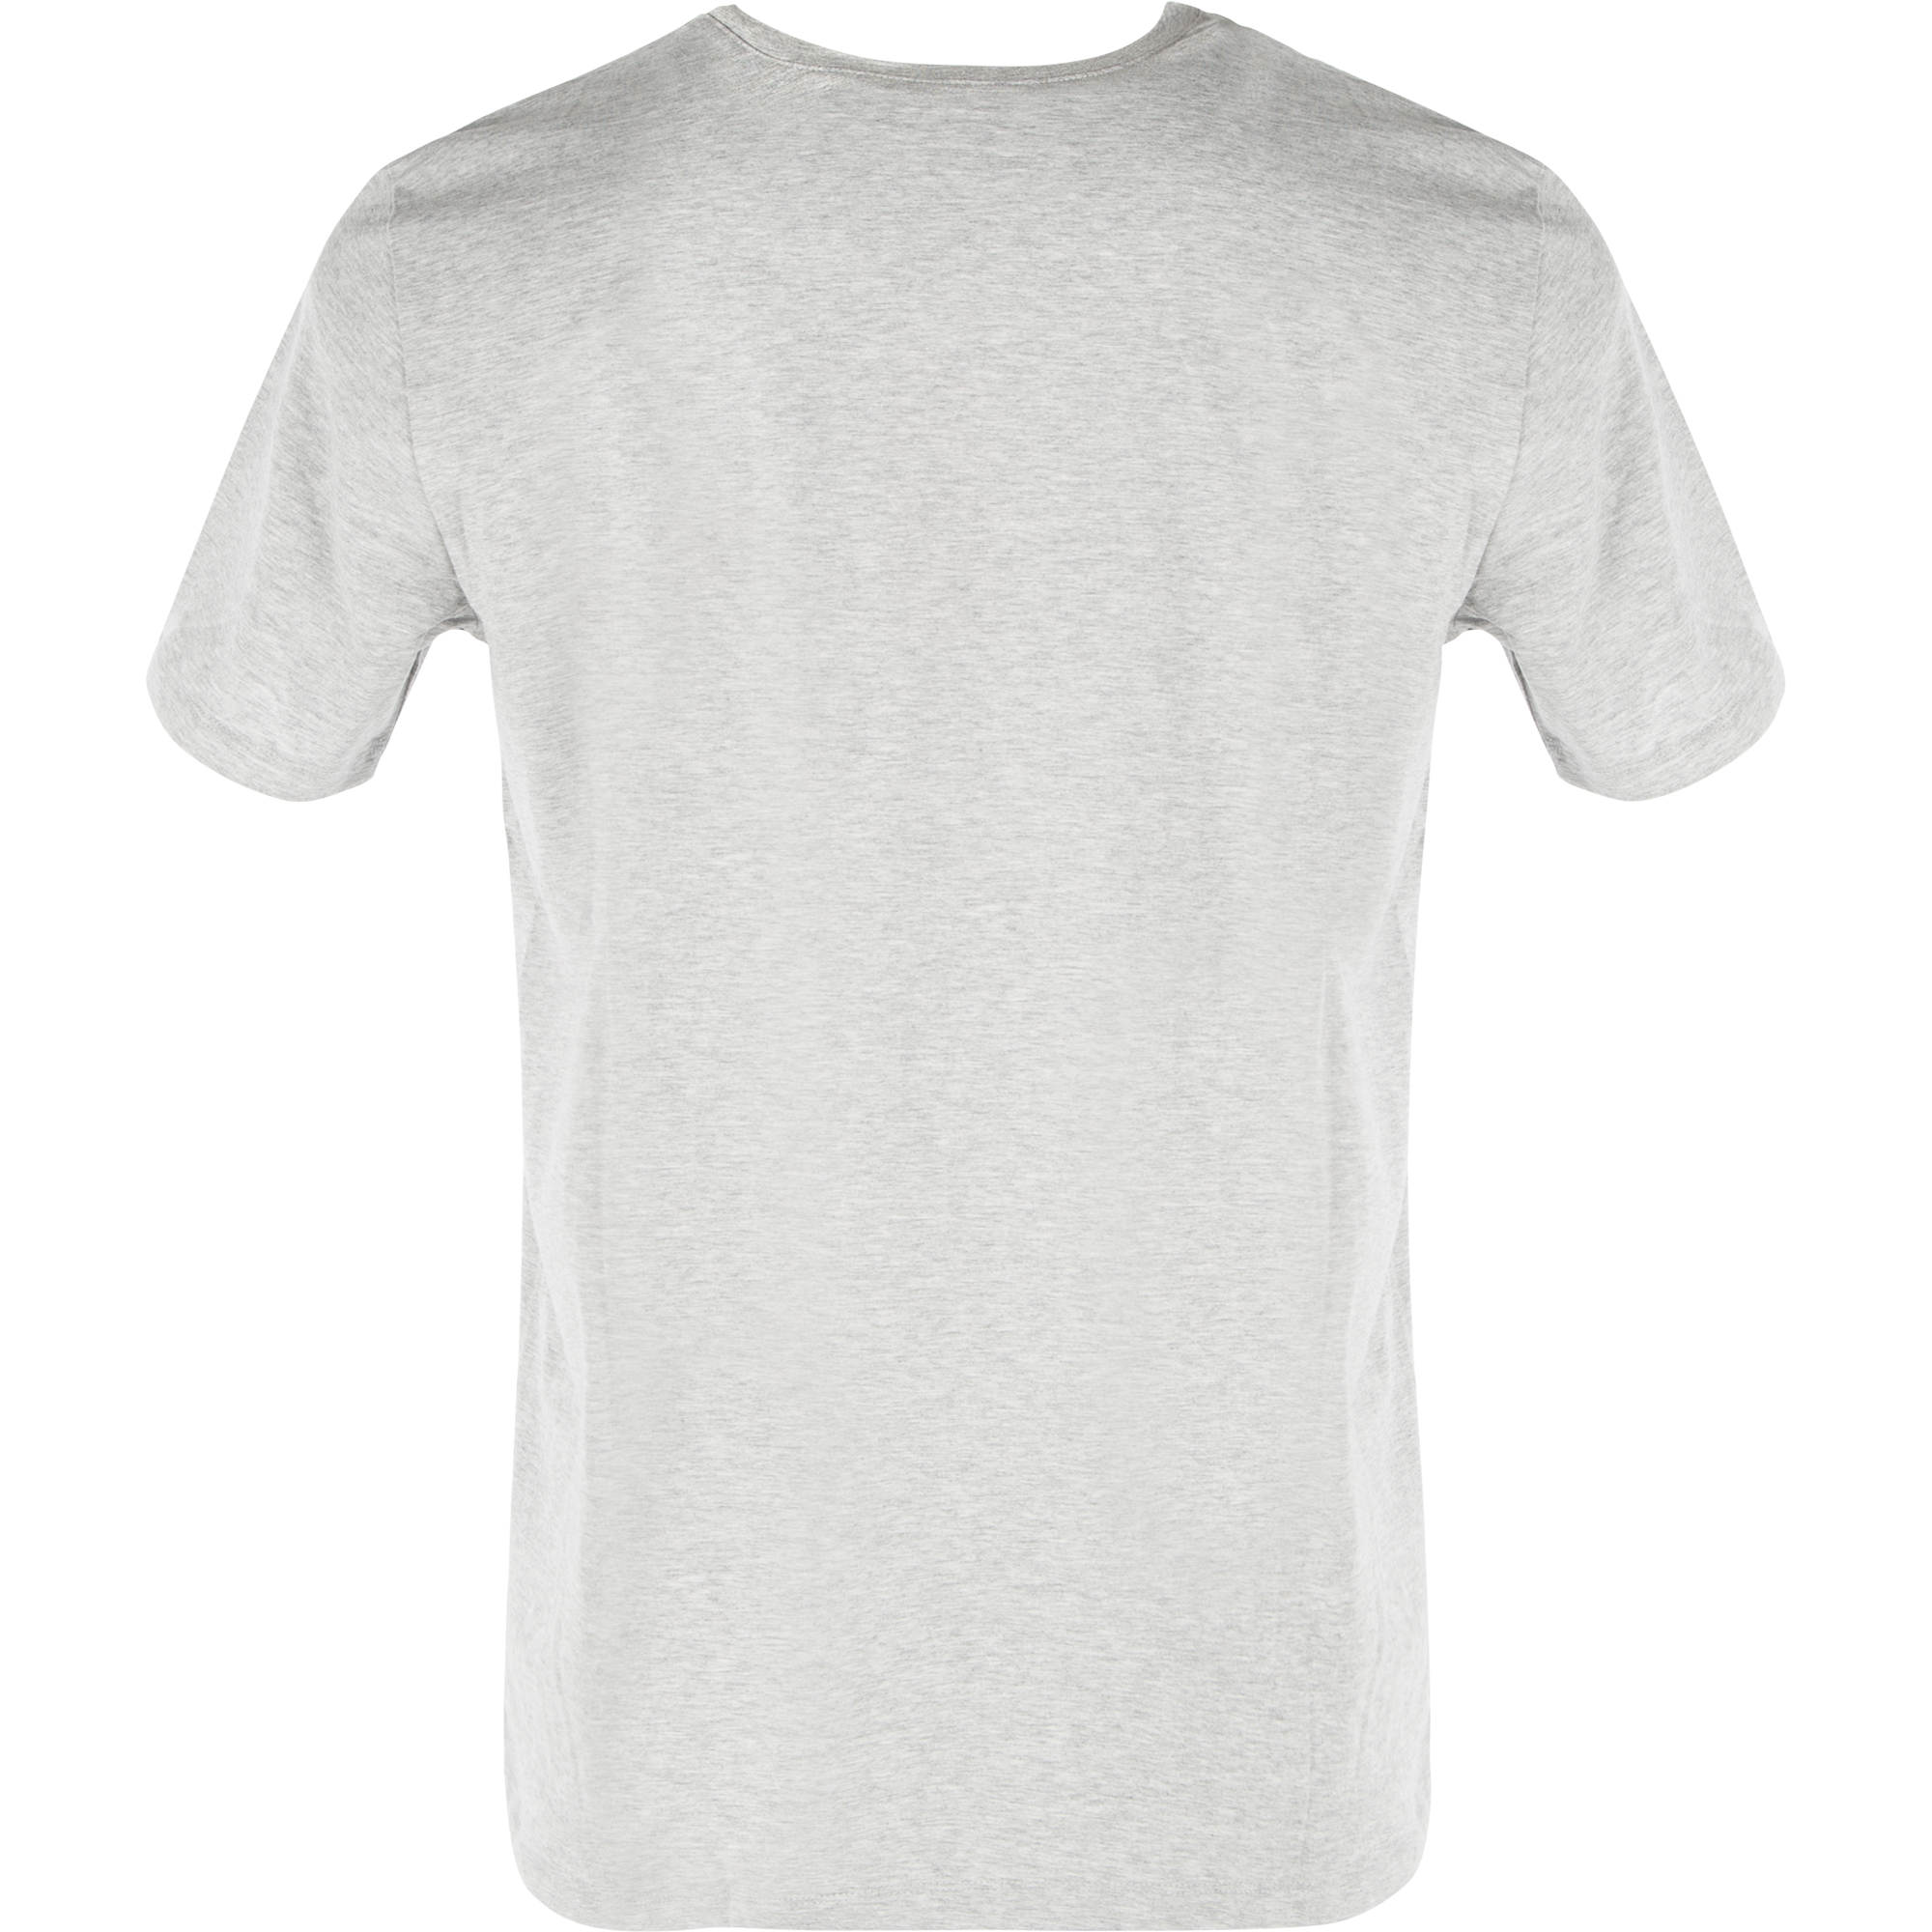 hugo boss herren t shirt dolive relaxed fit open grey hugo. Black Bedroom Furniture Sets. Home Design Ideas